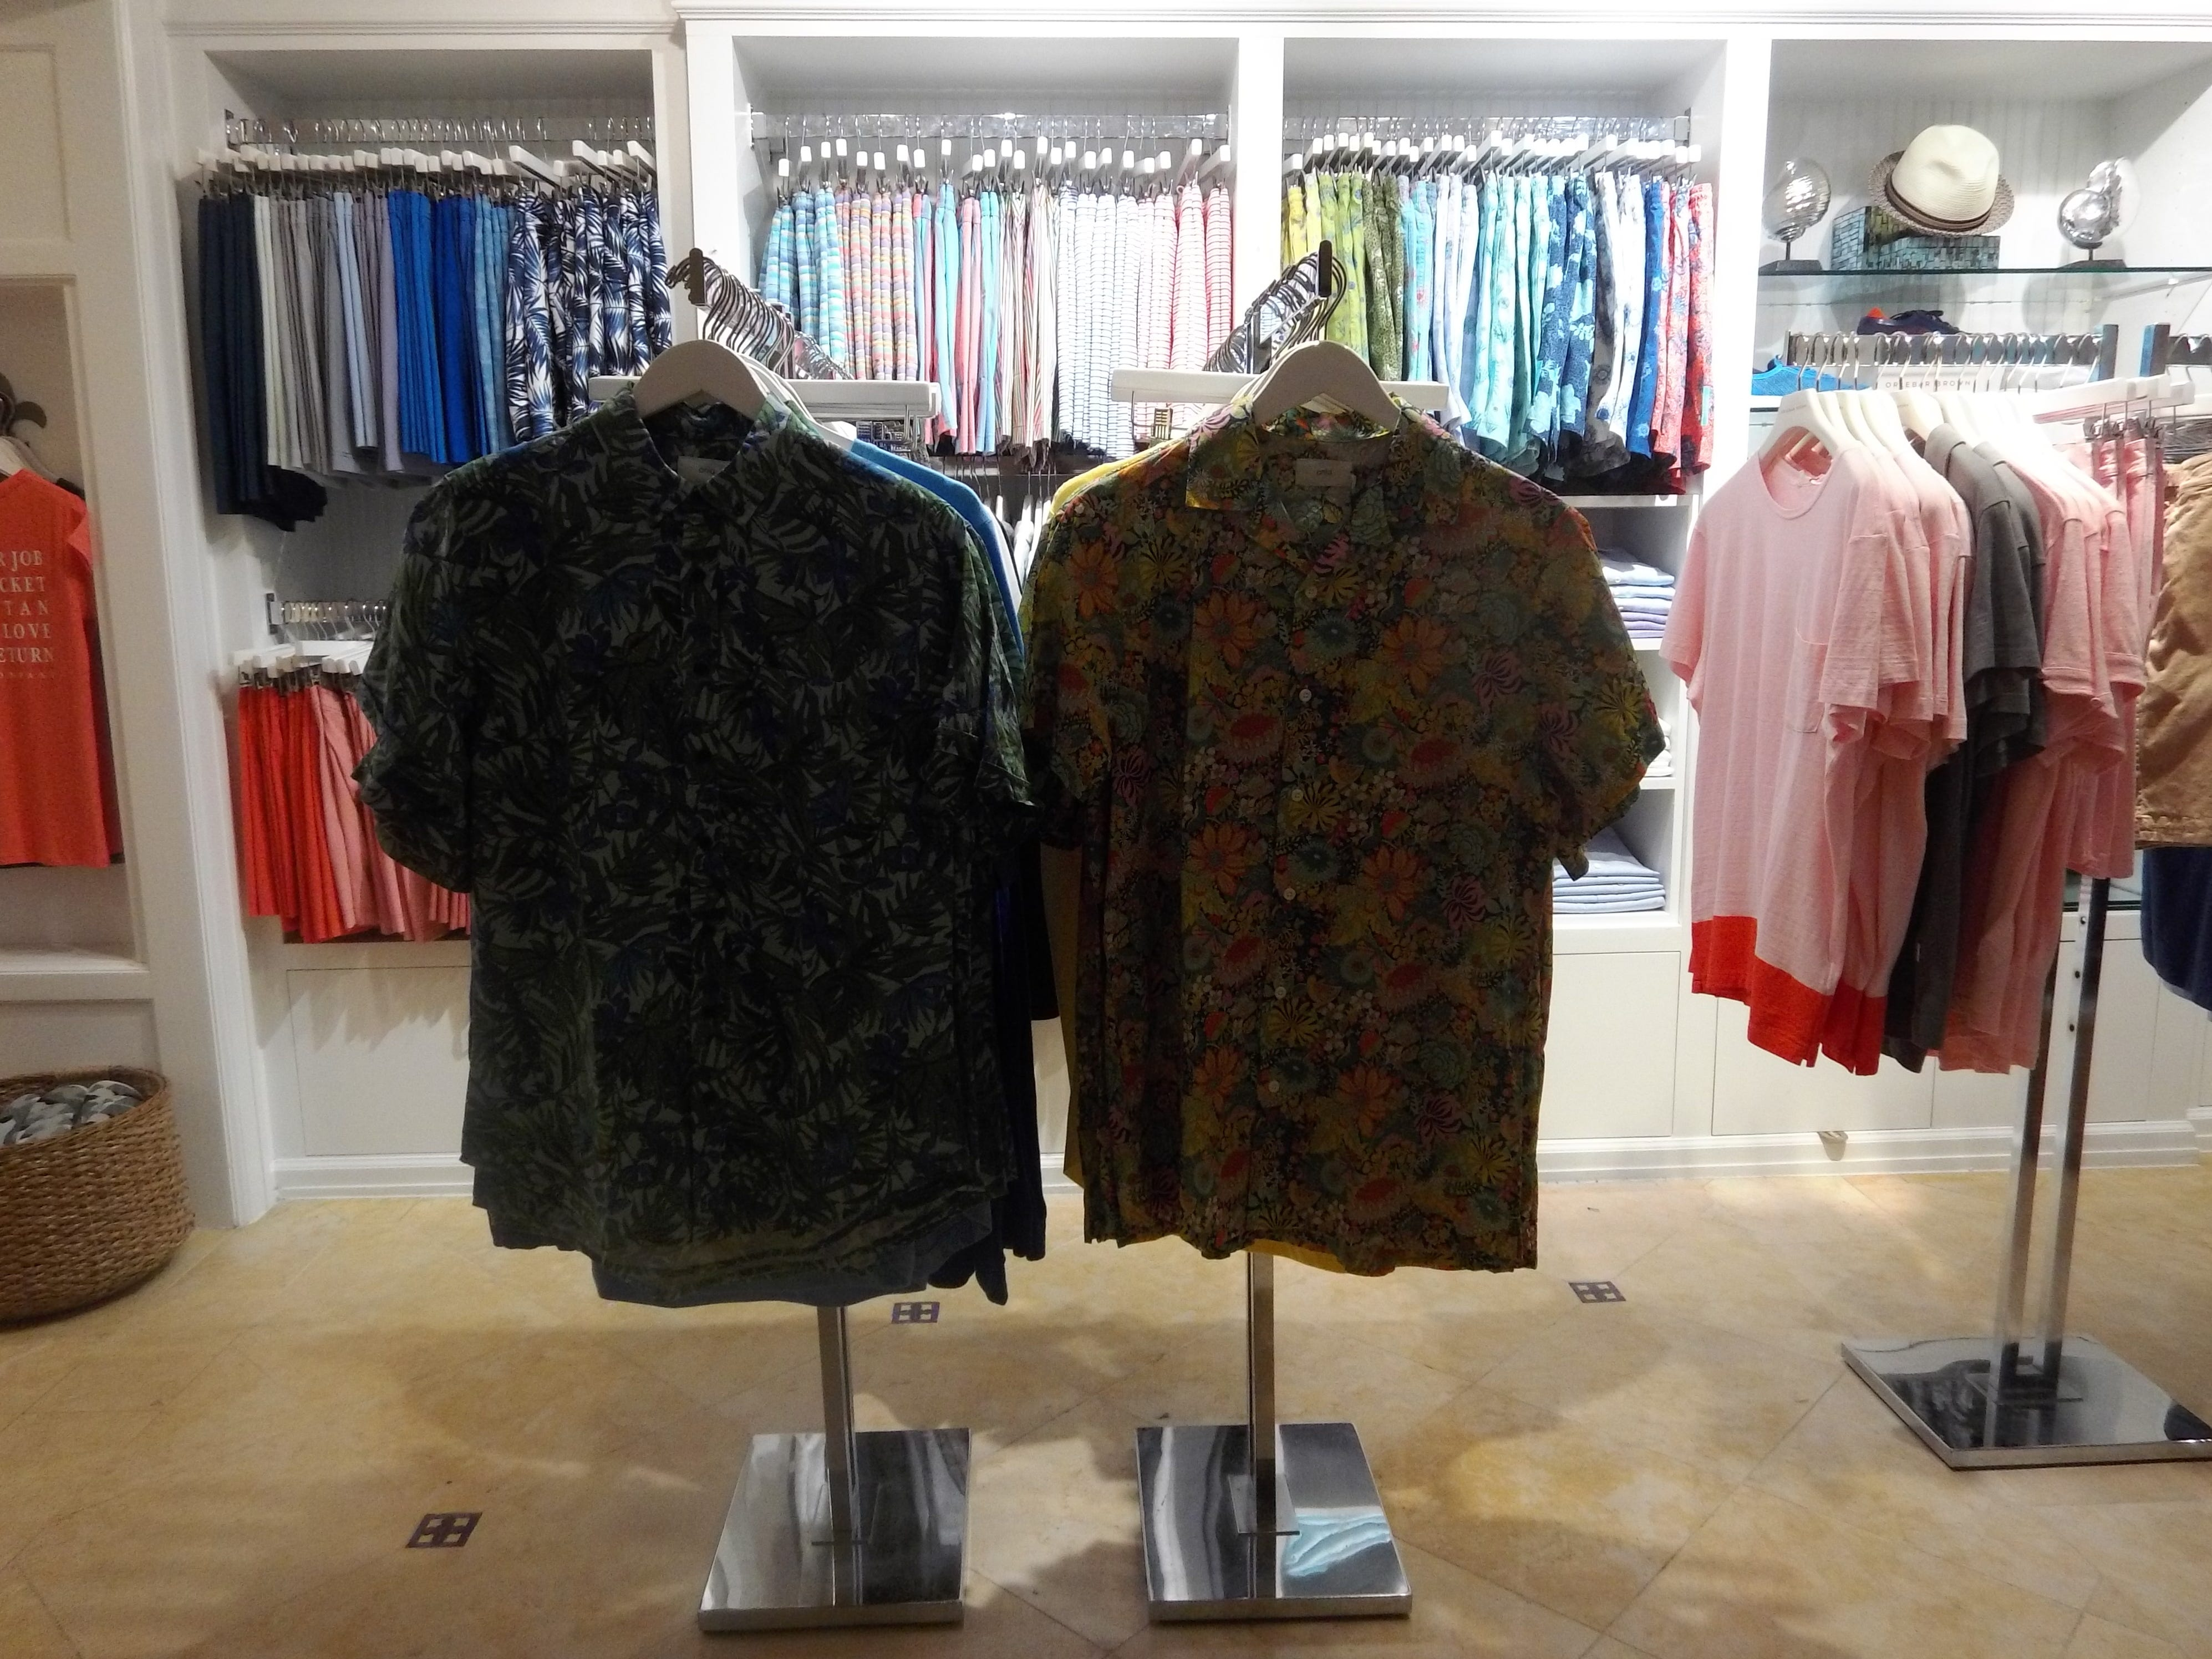 Tropical wear can be found at Mizner's Resort Shop.